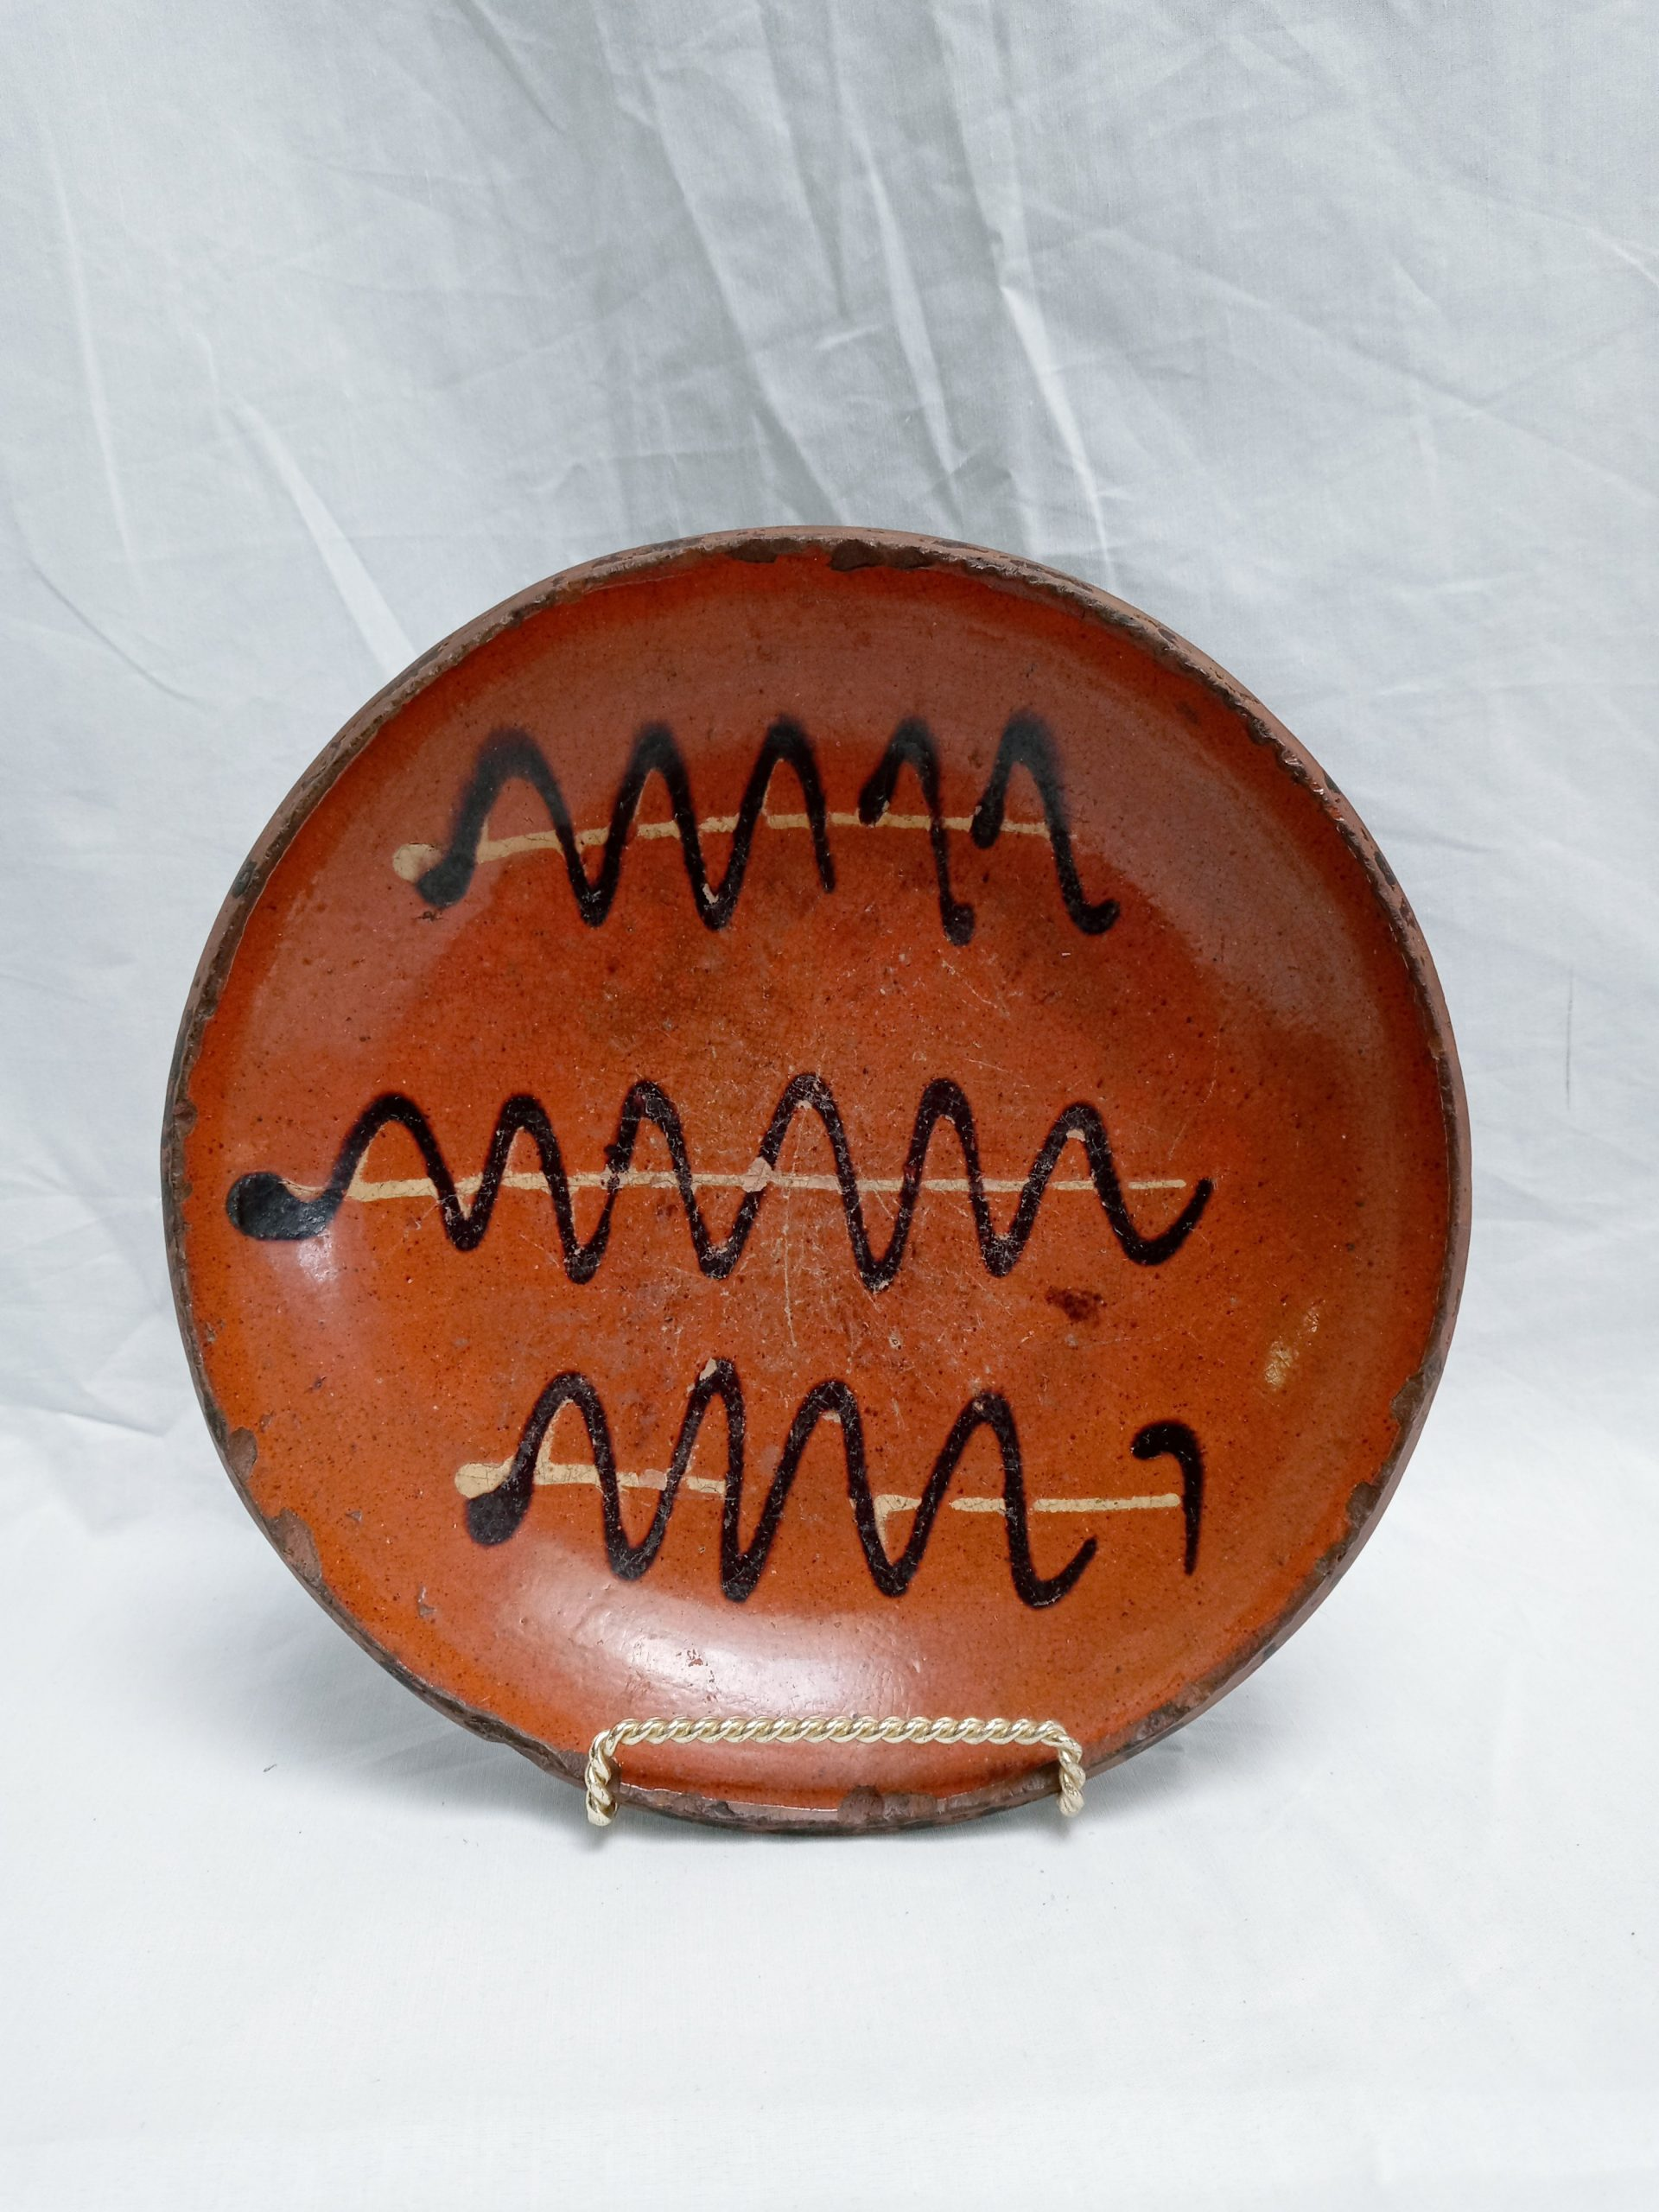 18-31725 Pennsylvania Redware Pottery Plate, two color yellow and brown decoration. Image